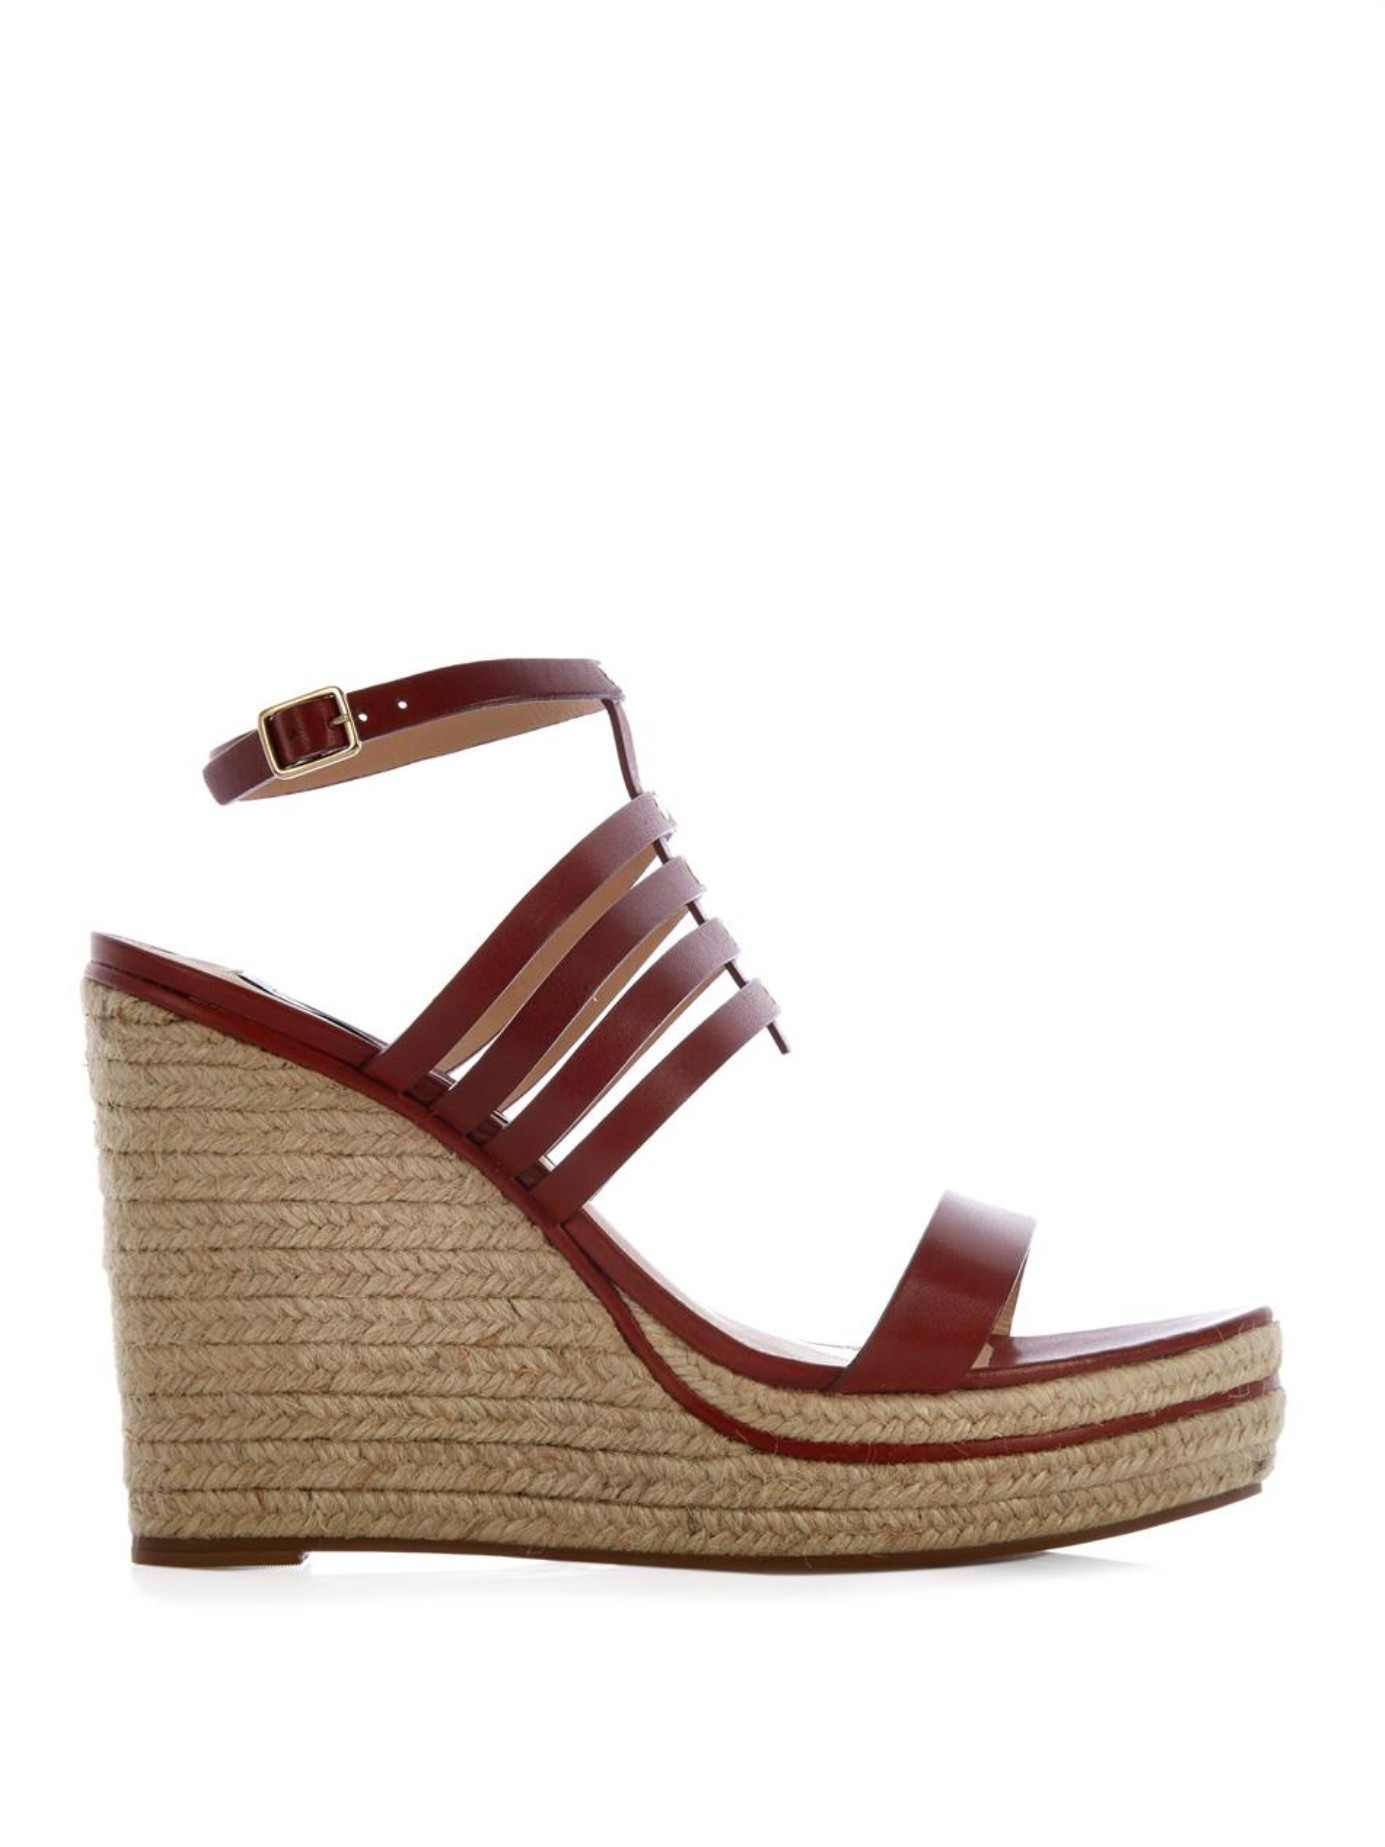 Diane von Furstenberg Leather Slingback Wedges wide range of cheap price with mastercard cheap online discount pay with visa ShiXQFuF